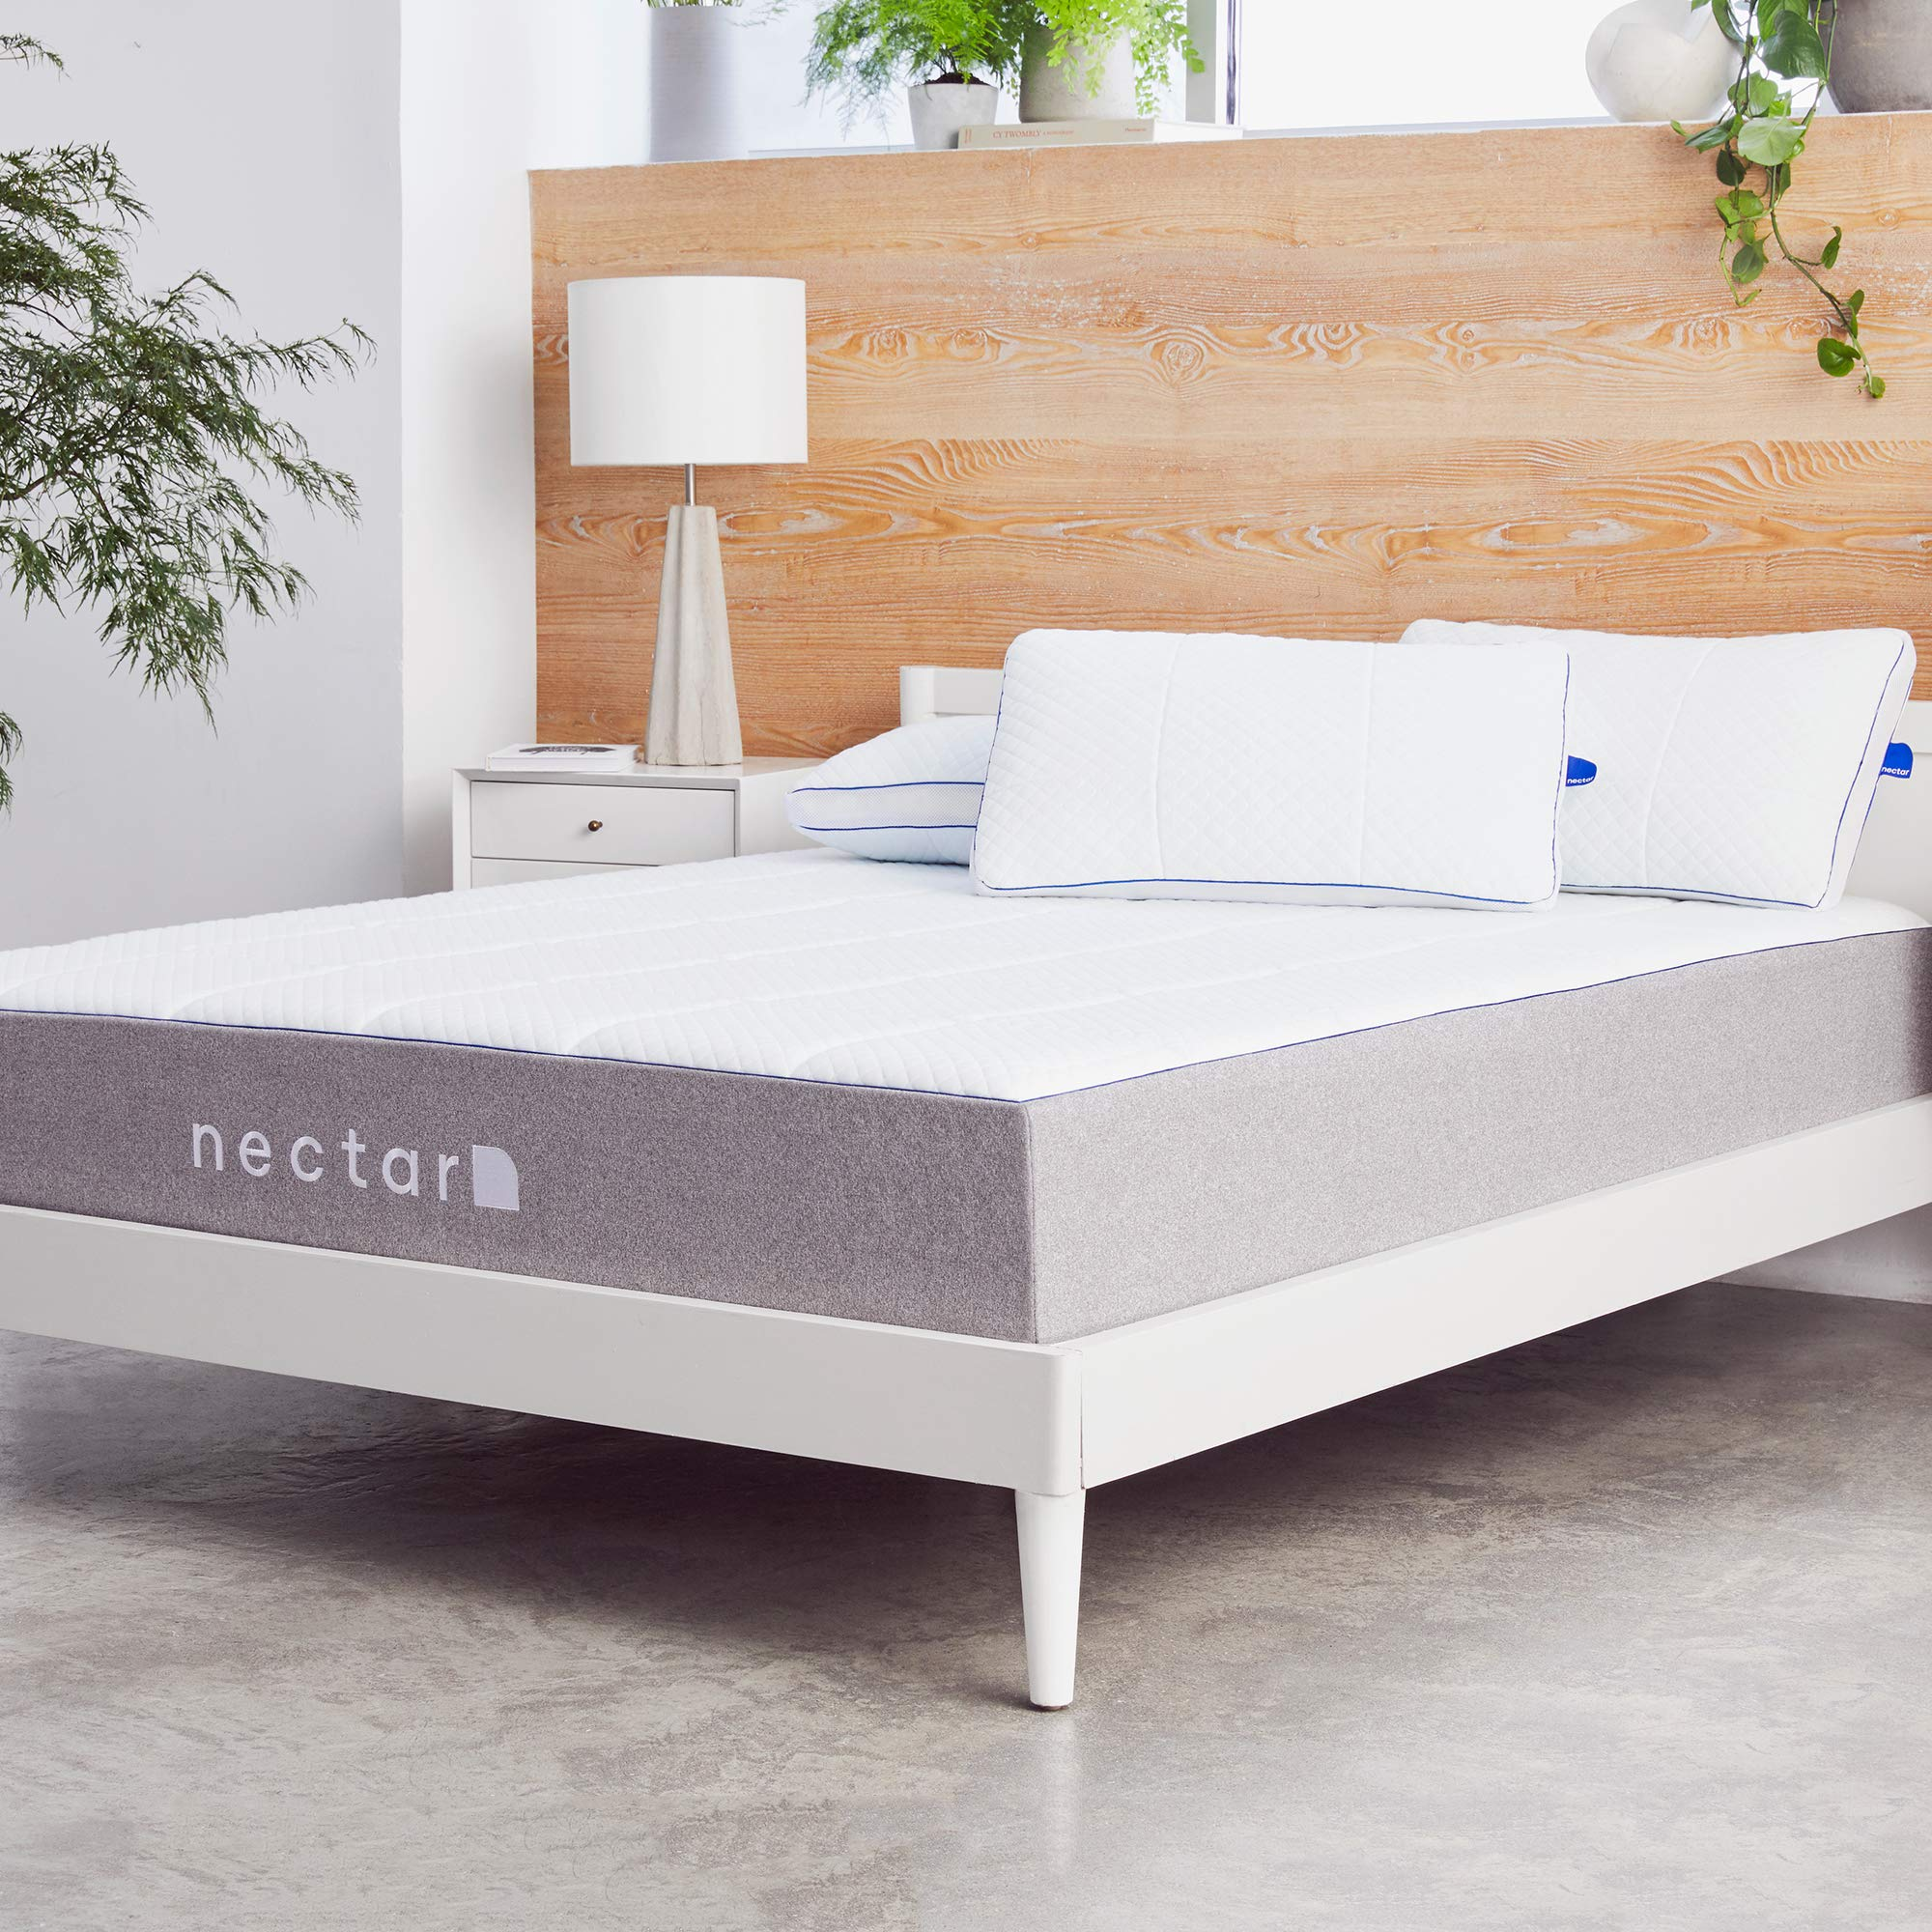 Nectar King Mattress + 2 Pillows Included - Gel Memory Foam - CertiPUR-US Certified Foams - 180 Night Home Trial - Forever Warranty by Nectar